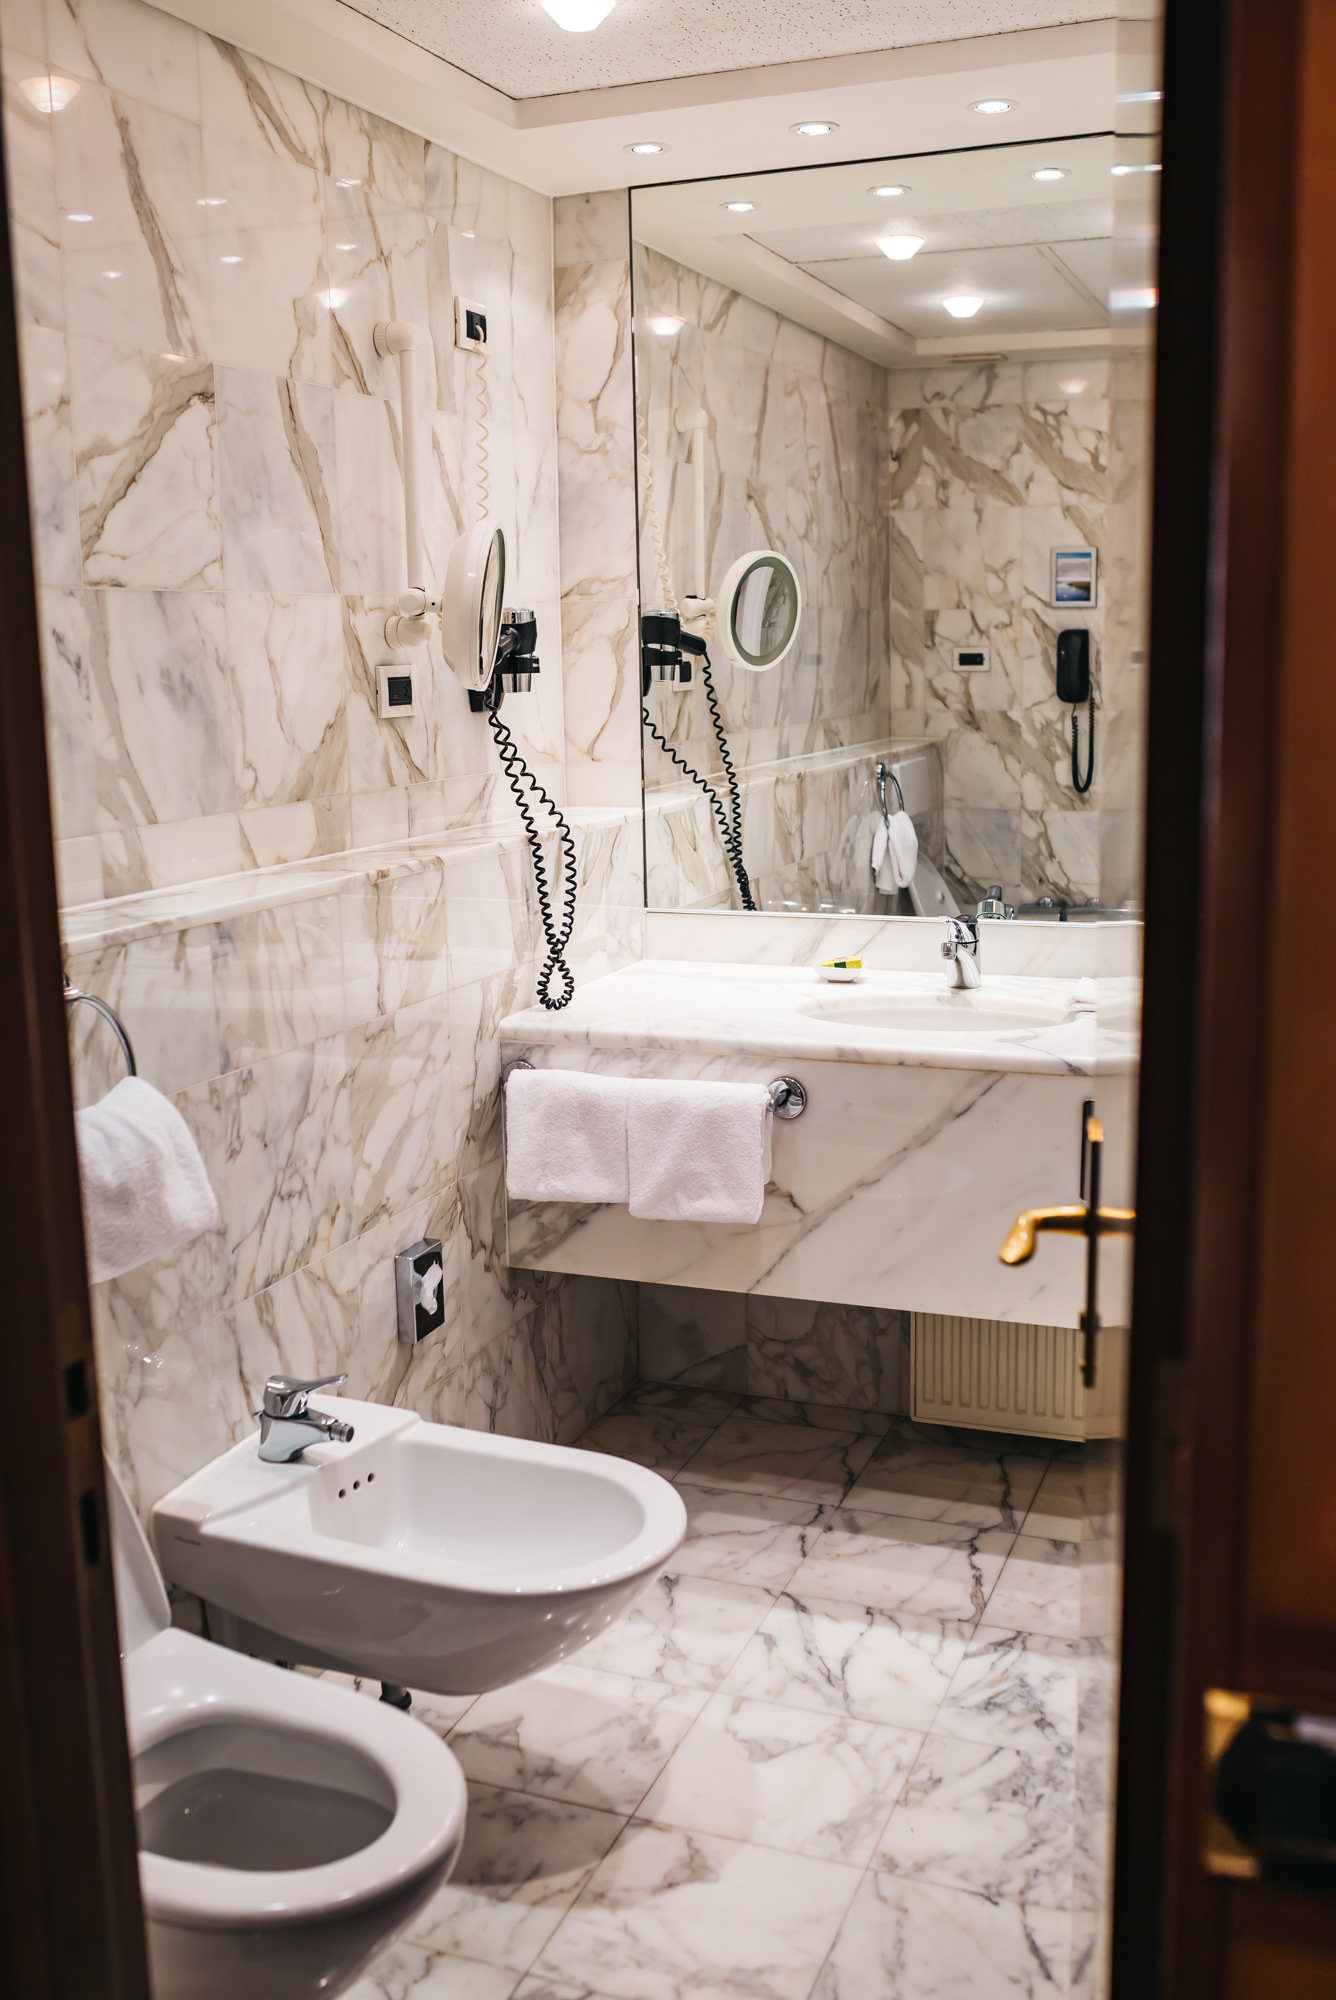 Bathroom with a toilet and bidet